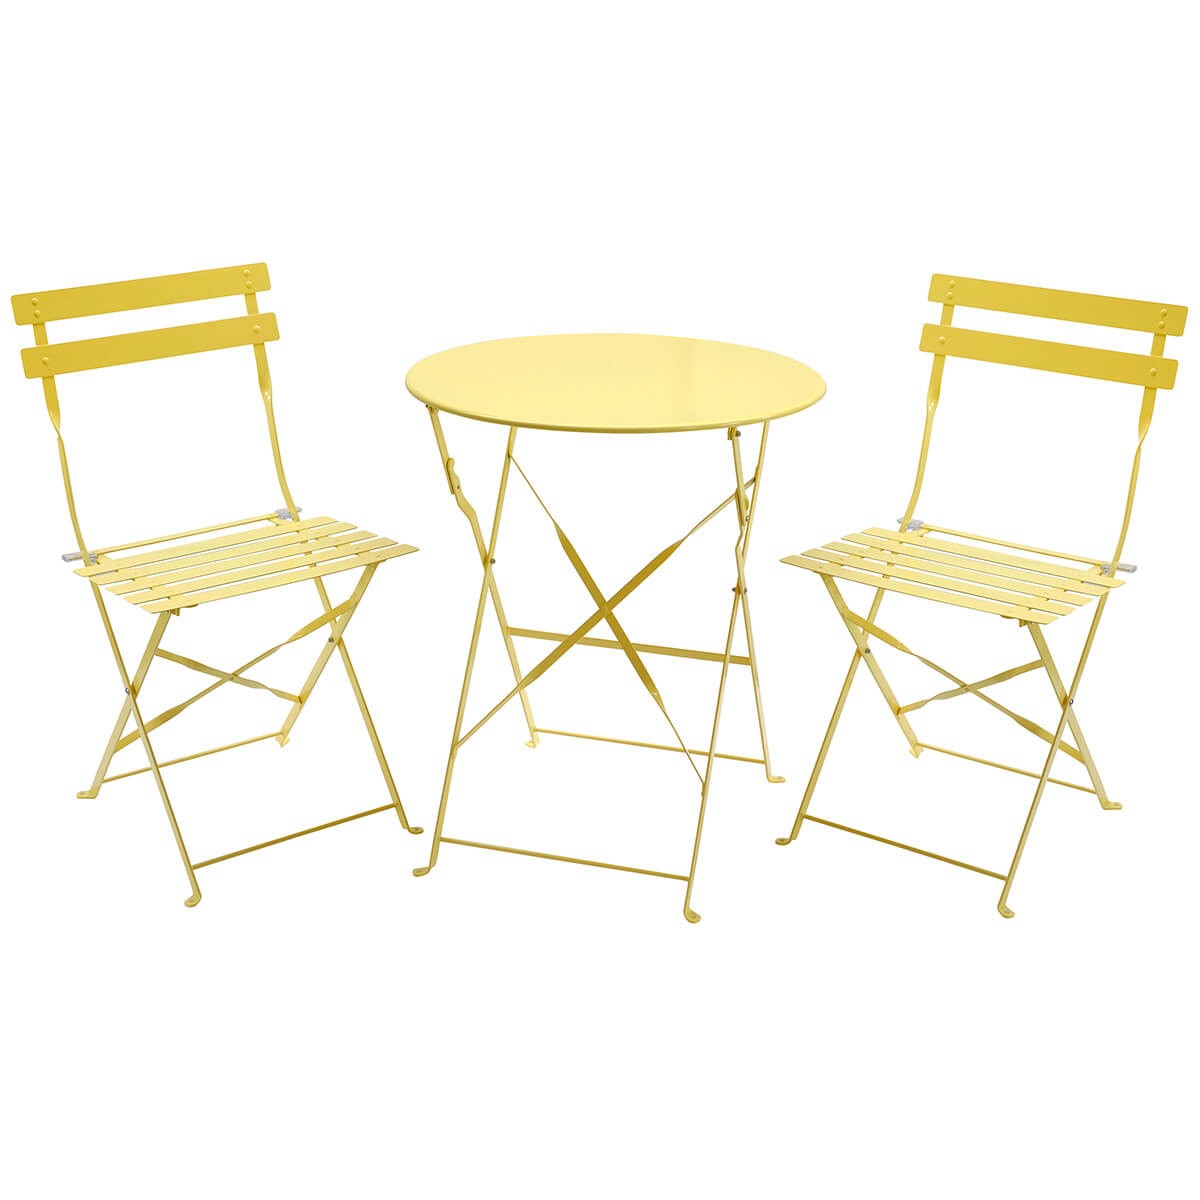 yellow chair review